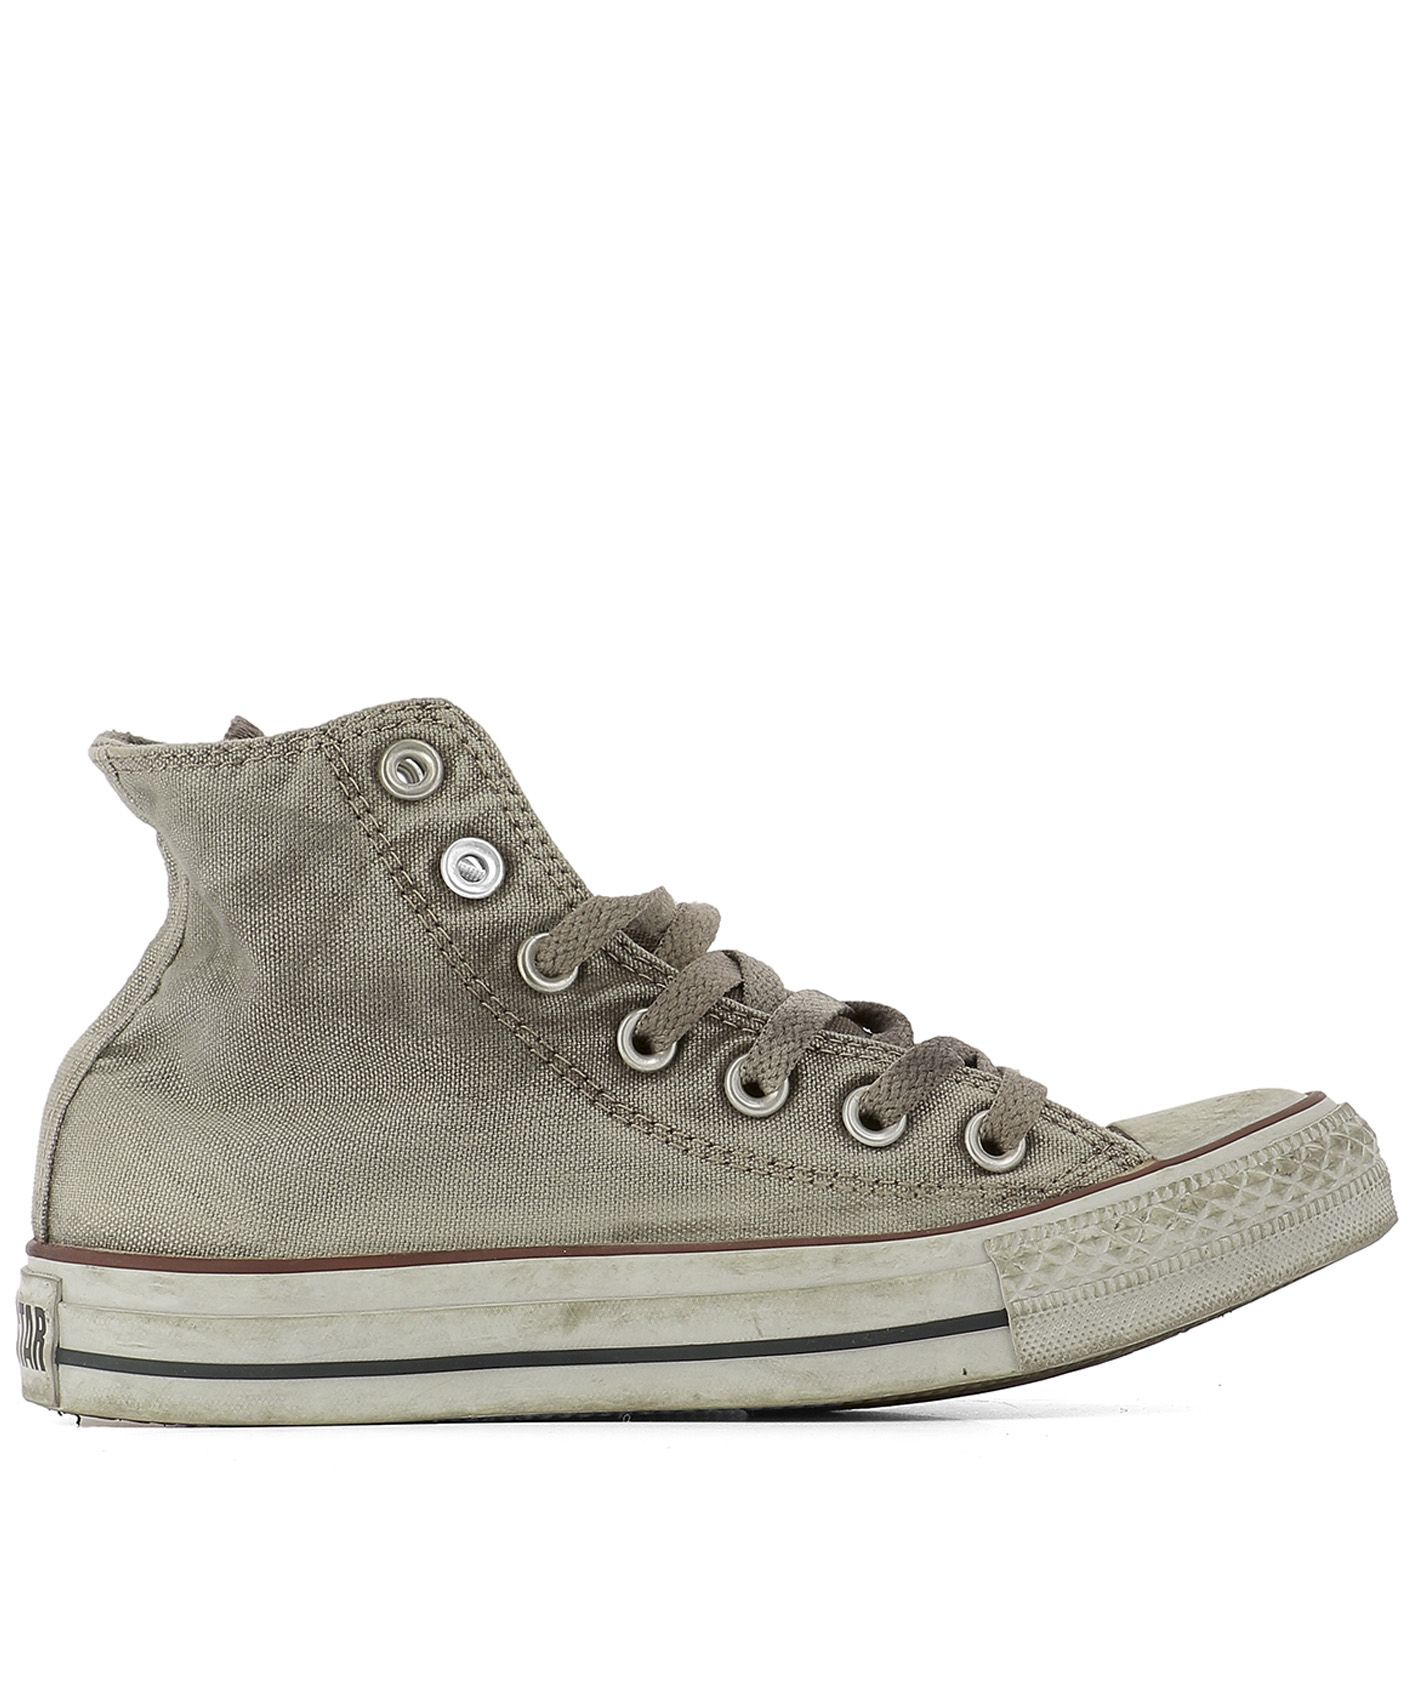 converse female brown fabric sneakers